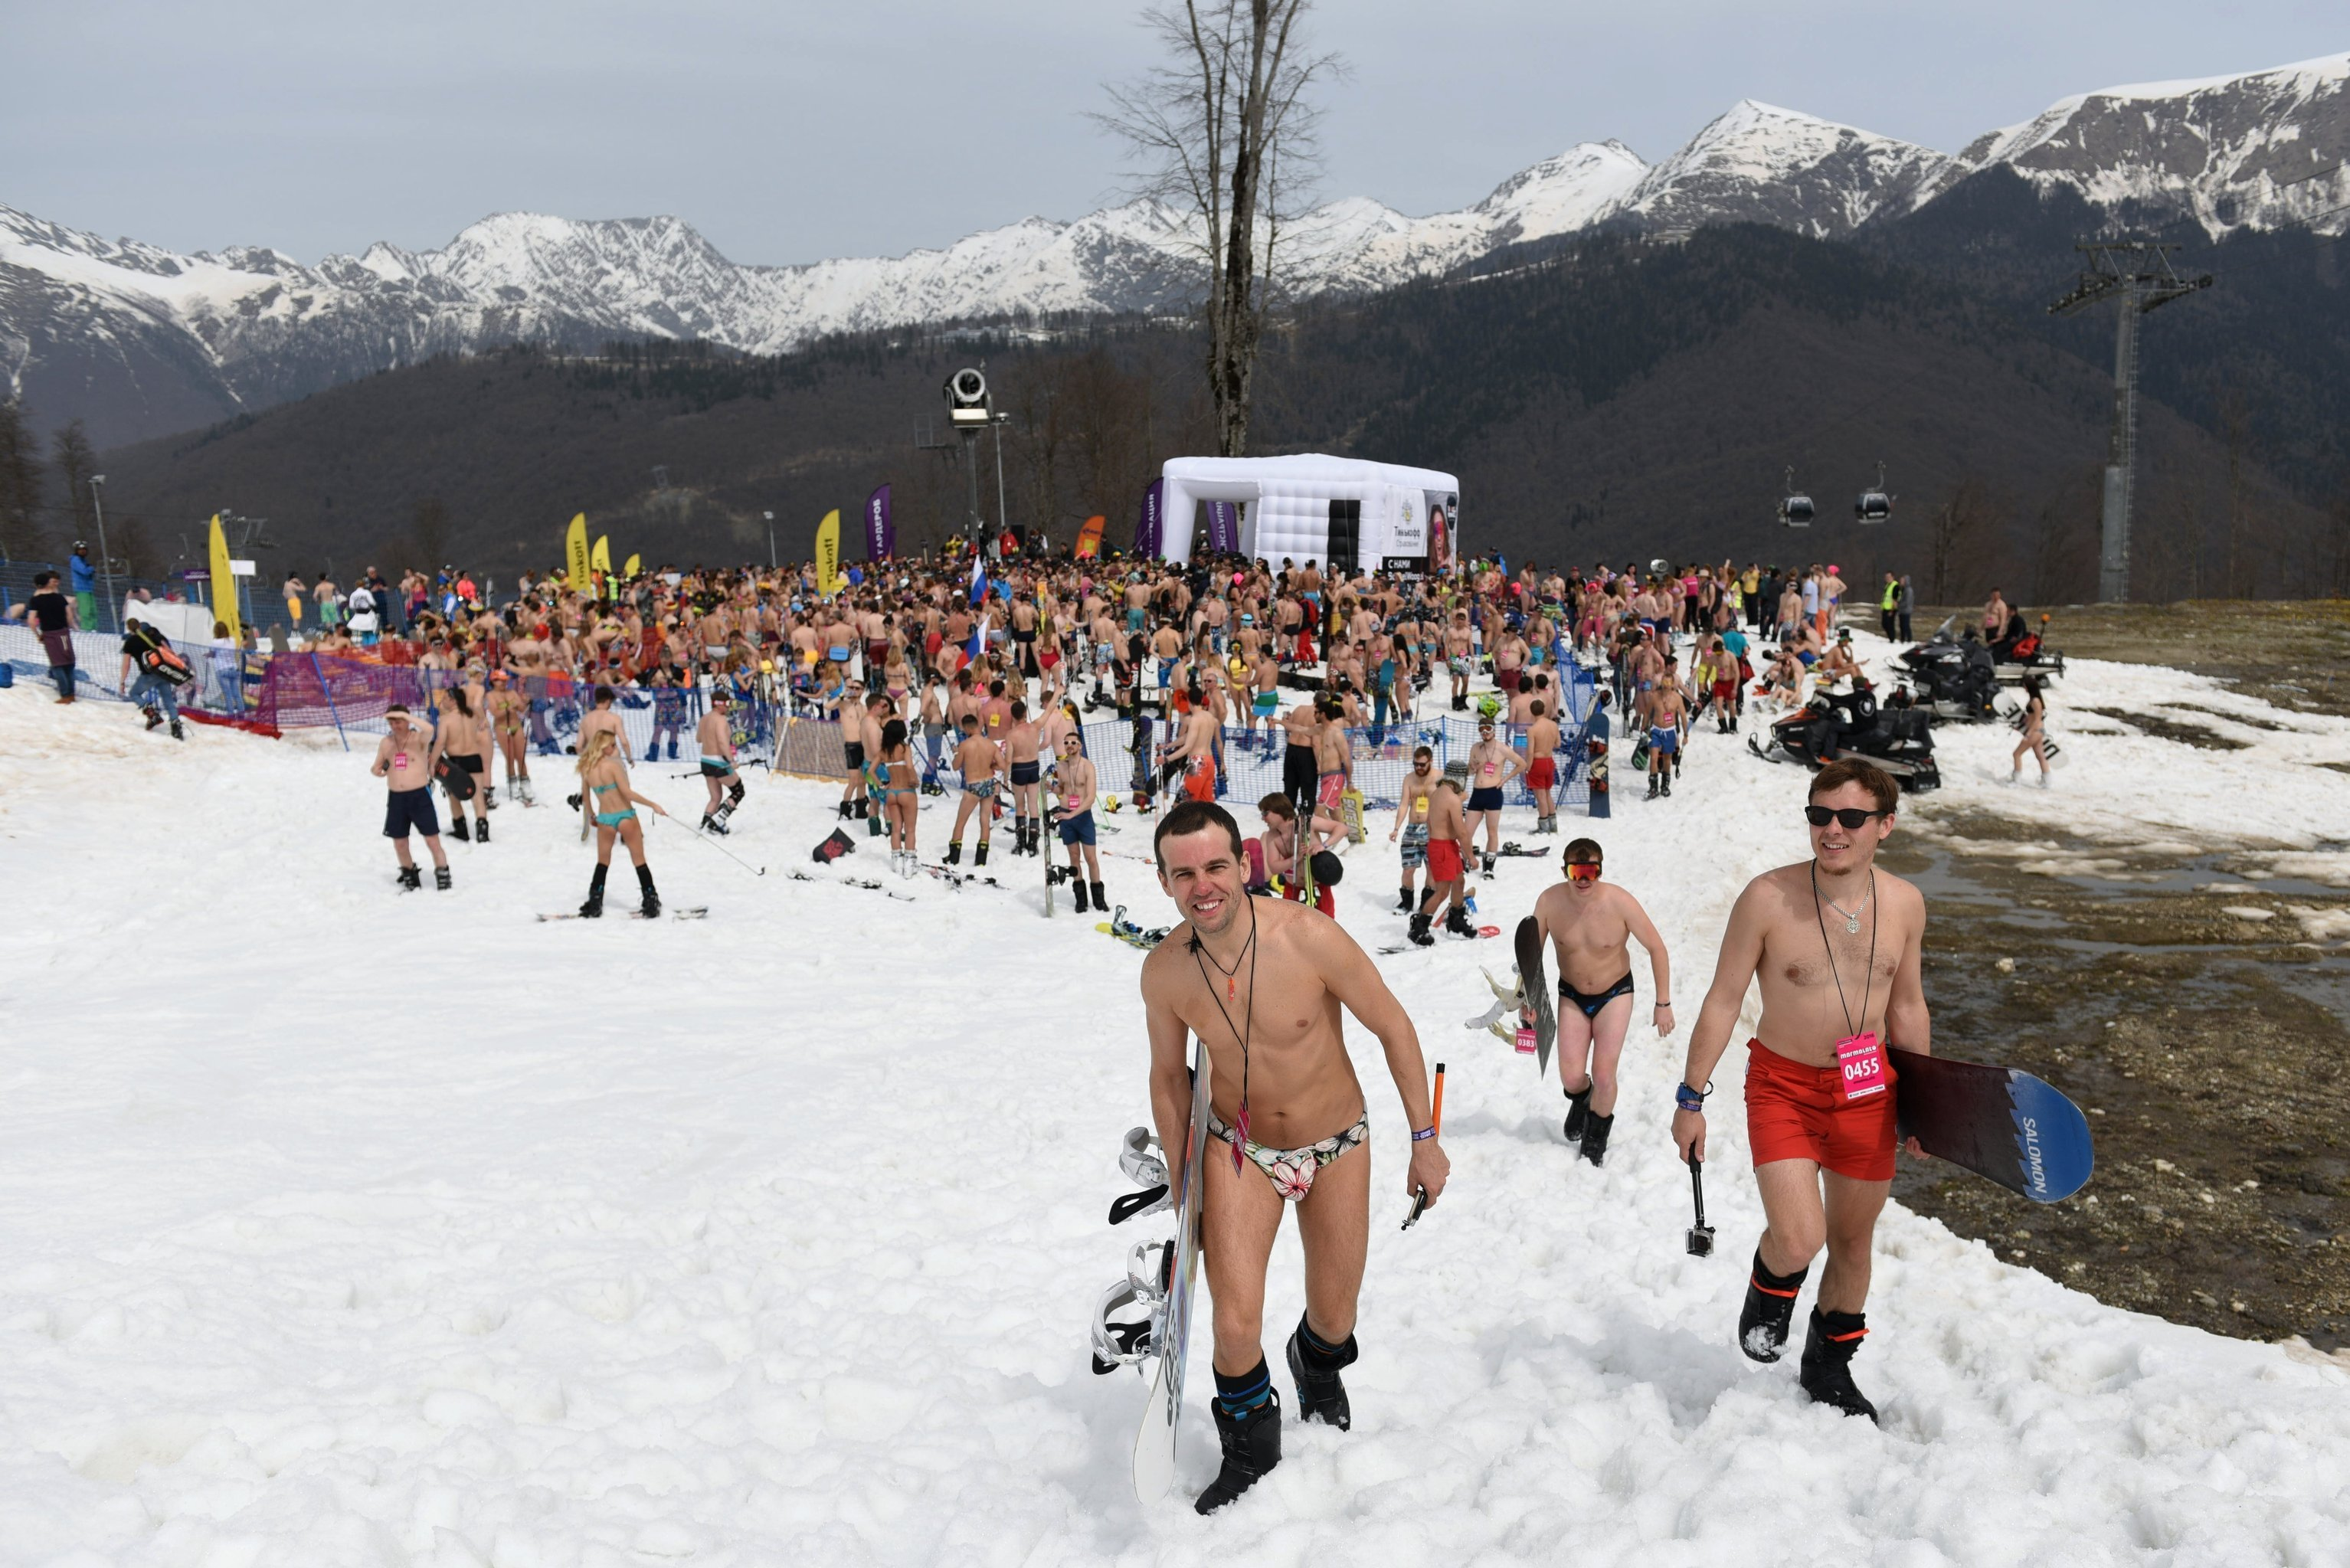 Participants of bikini downhill skiing at the BoogelWoogel festival on the slope of the Roza Khutor alpine resort in Sochi National Park. The event aims to set a Guinness world record